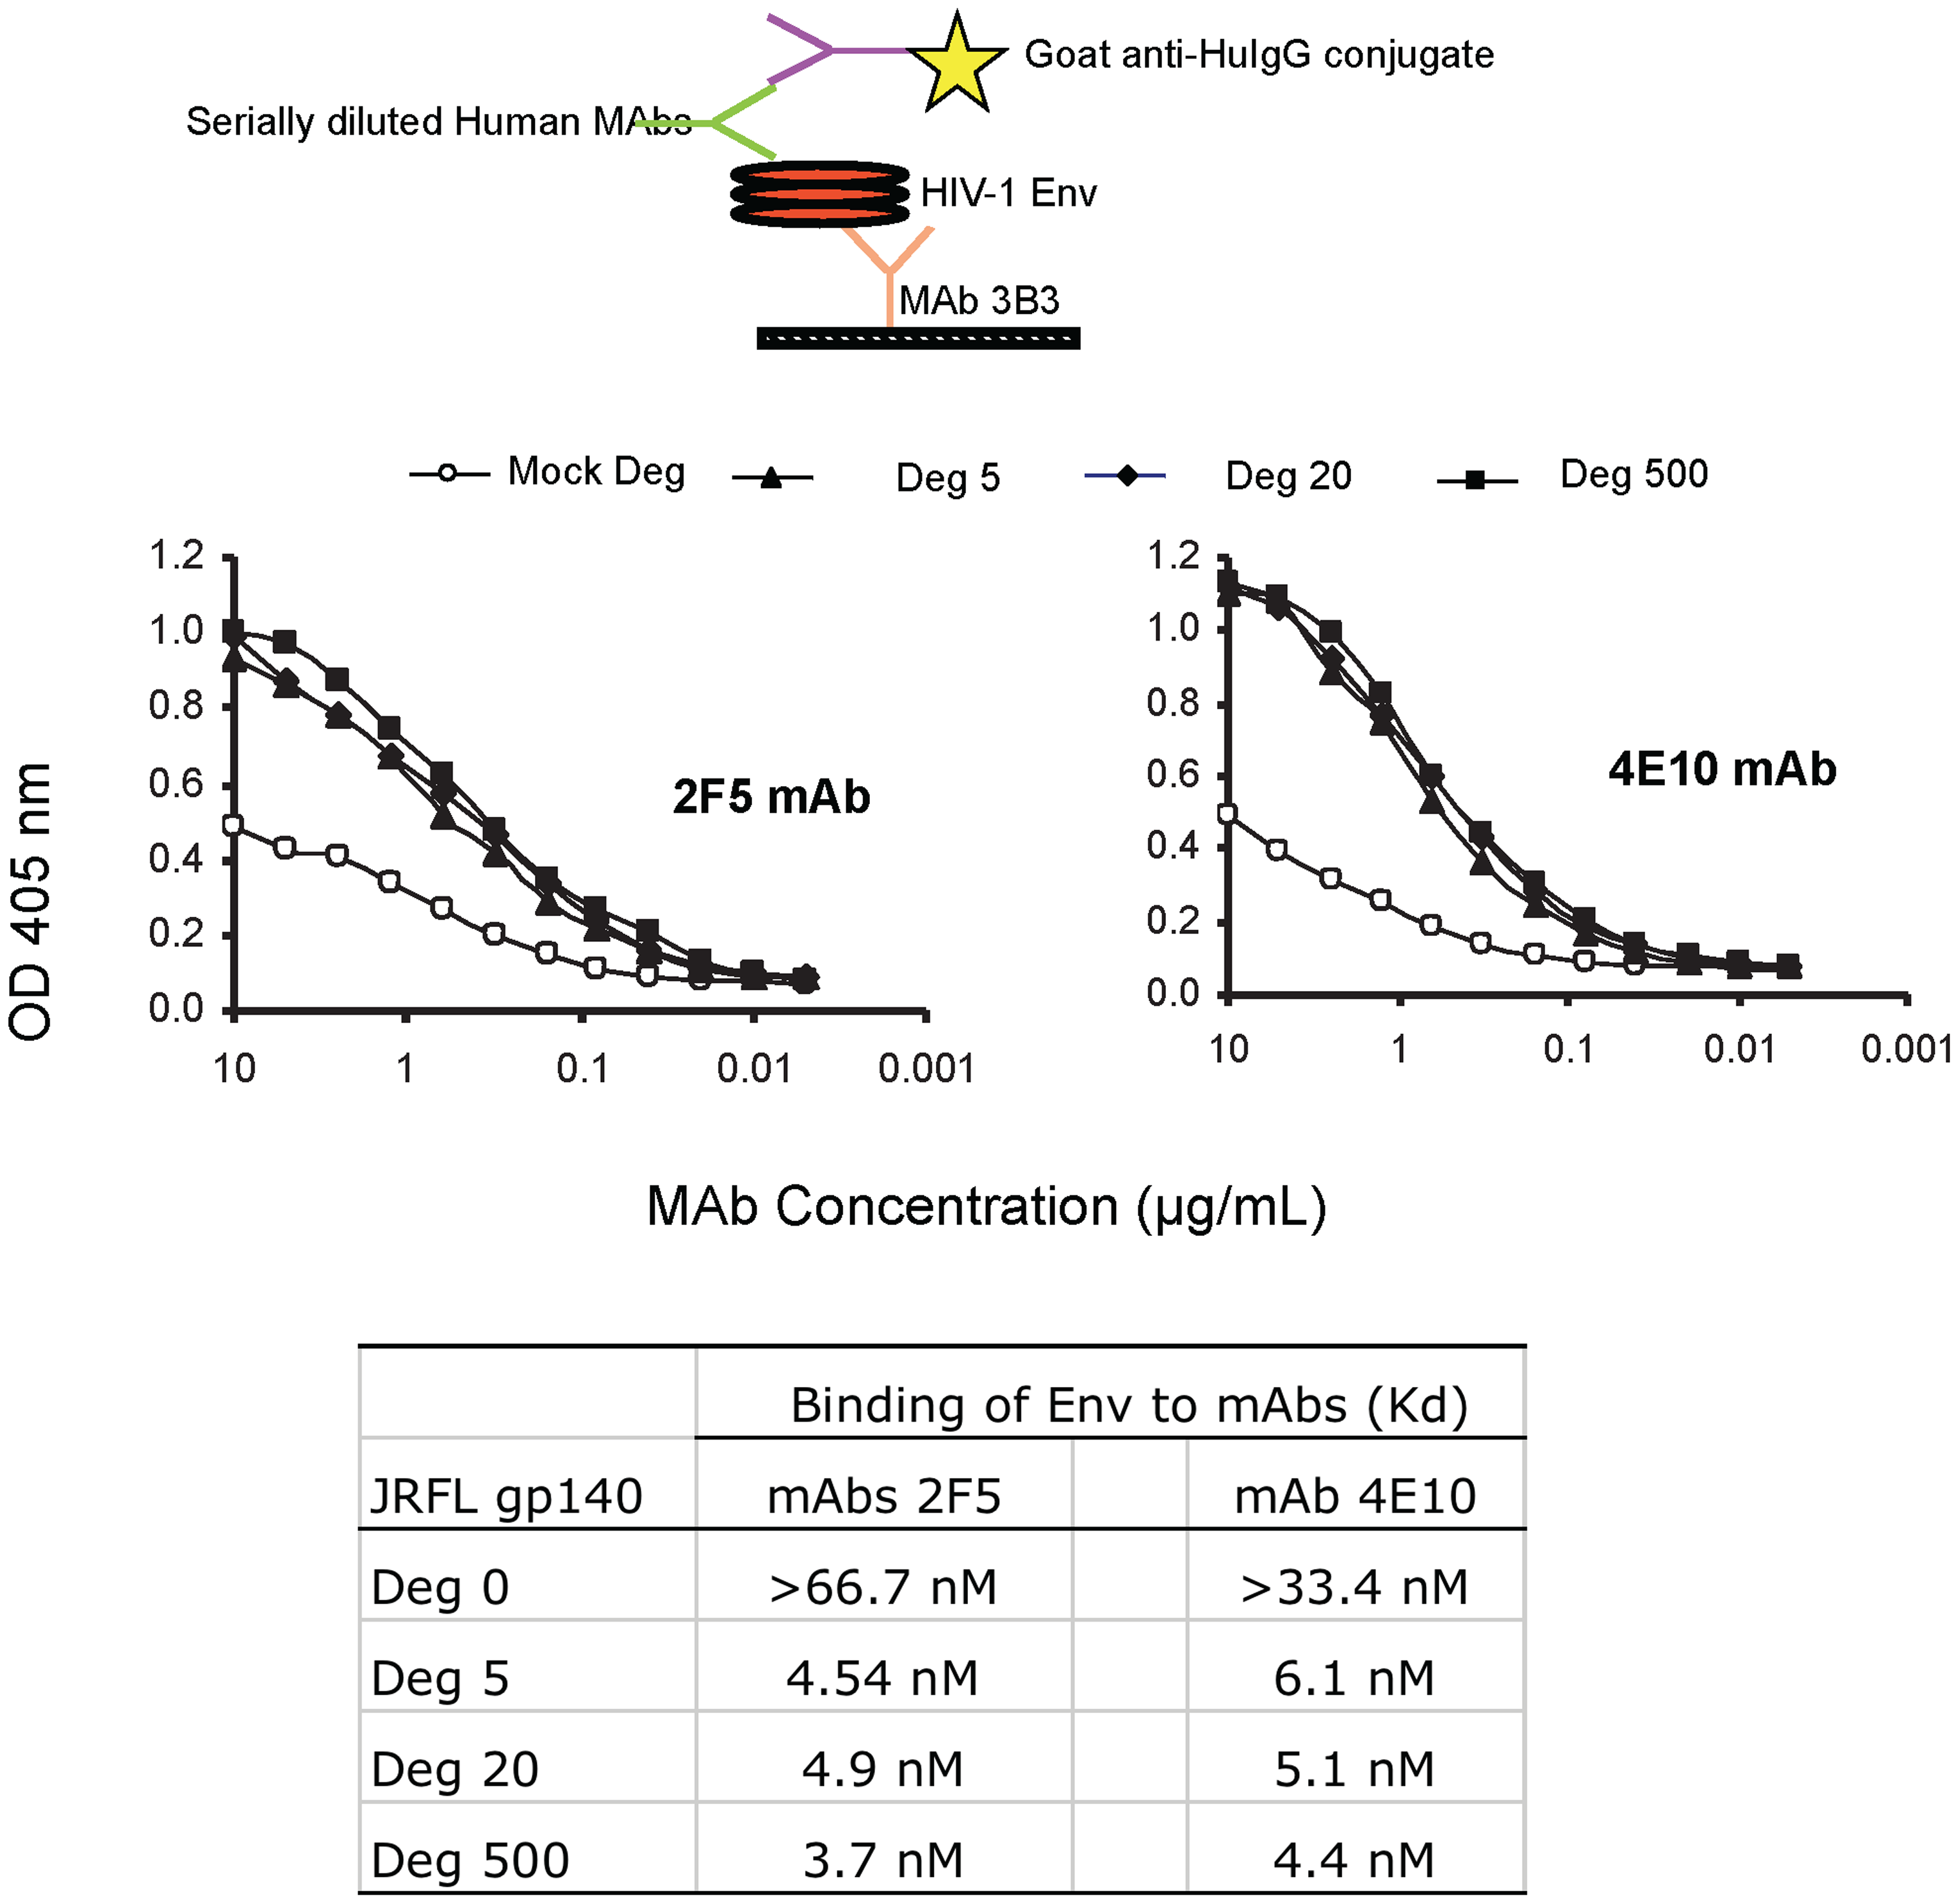 Binding kinetics of mAbs 2F5 and 4E10 to WT glycosylated and deglycosylated JRFL gp140.